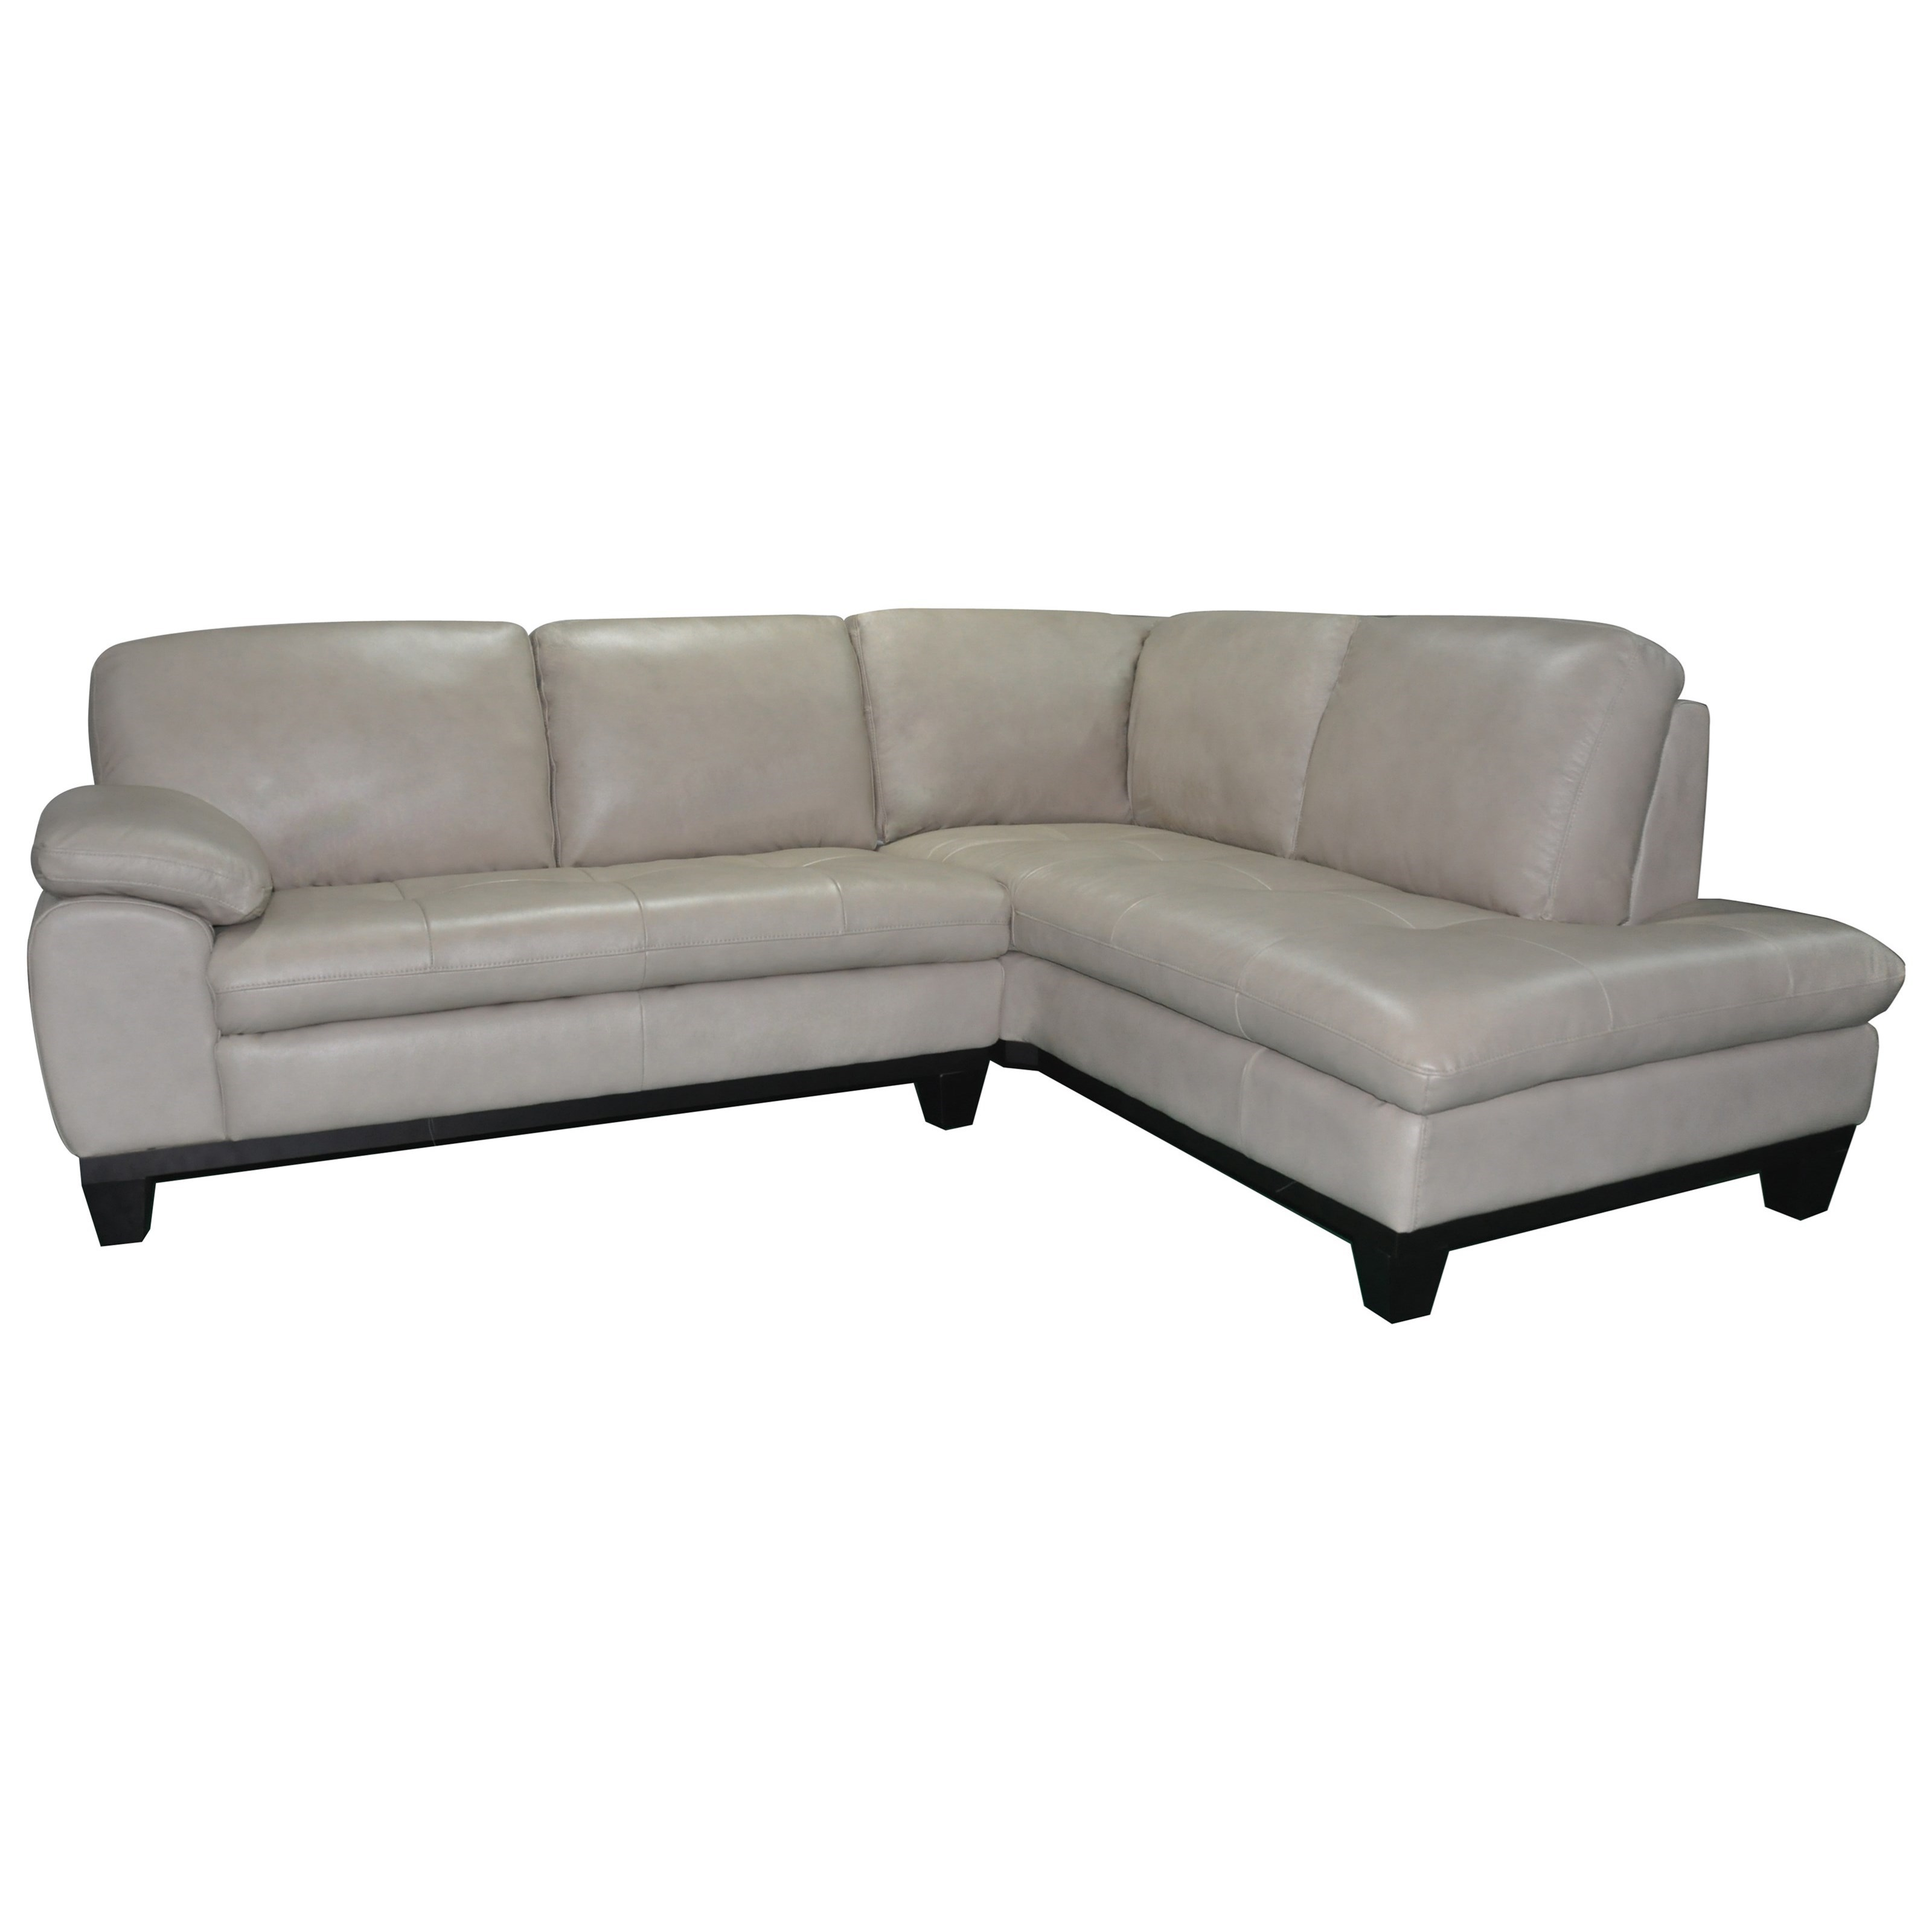 1263 Two Piece Sectional Sofa with RAF Chaise Becker Furniture